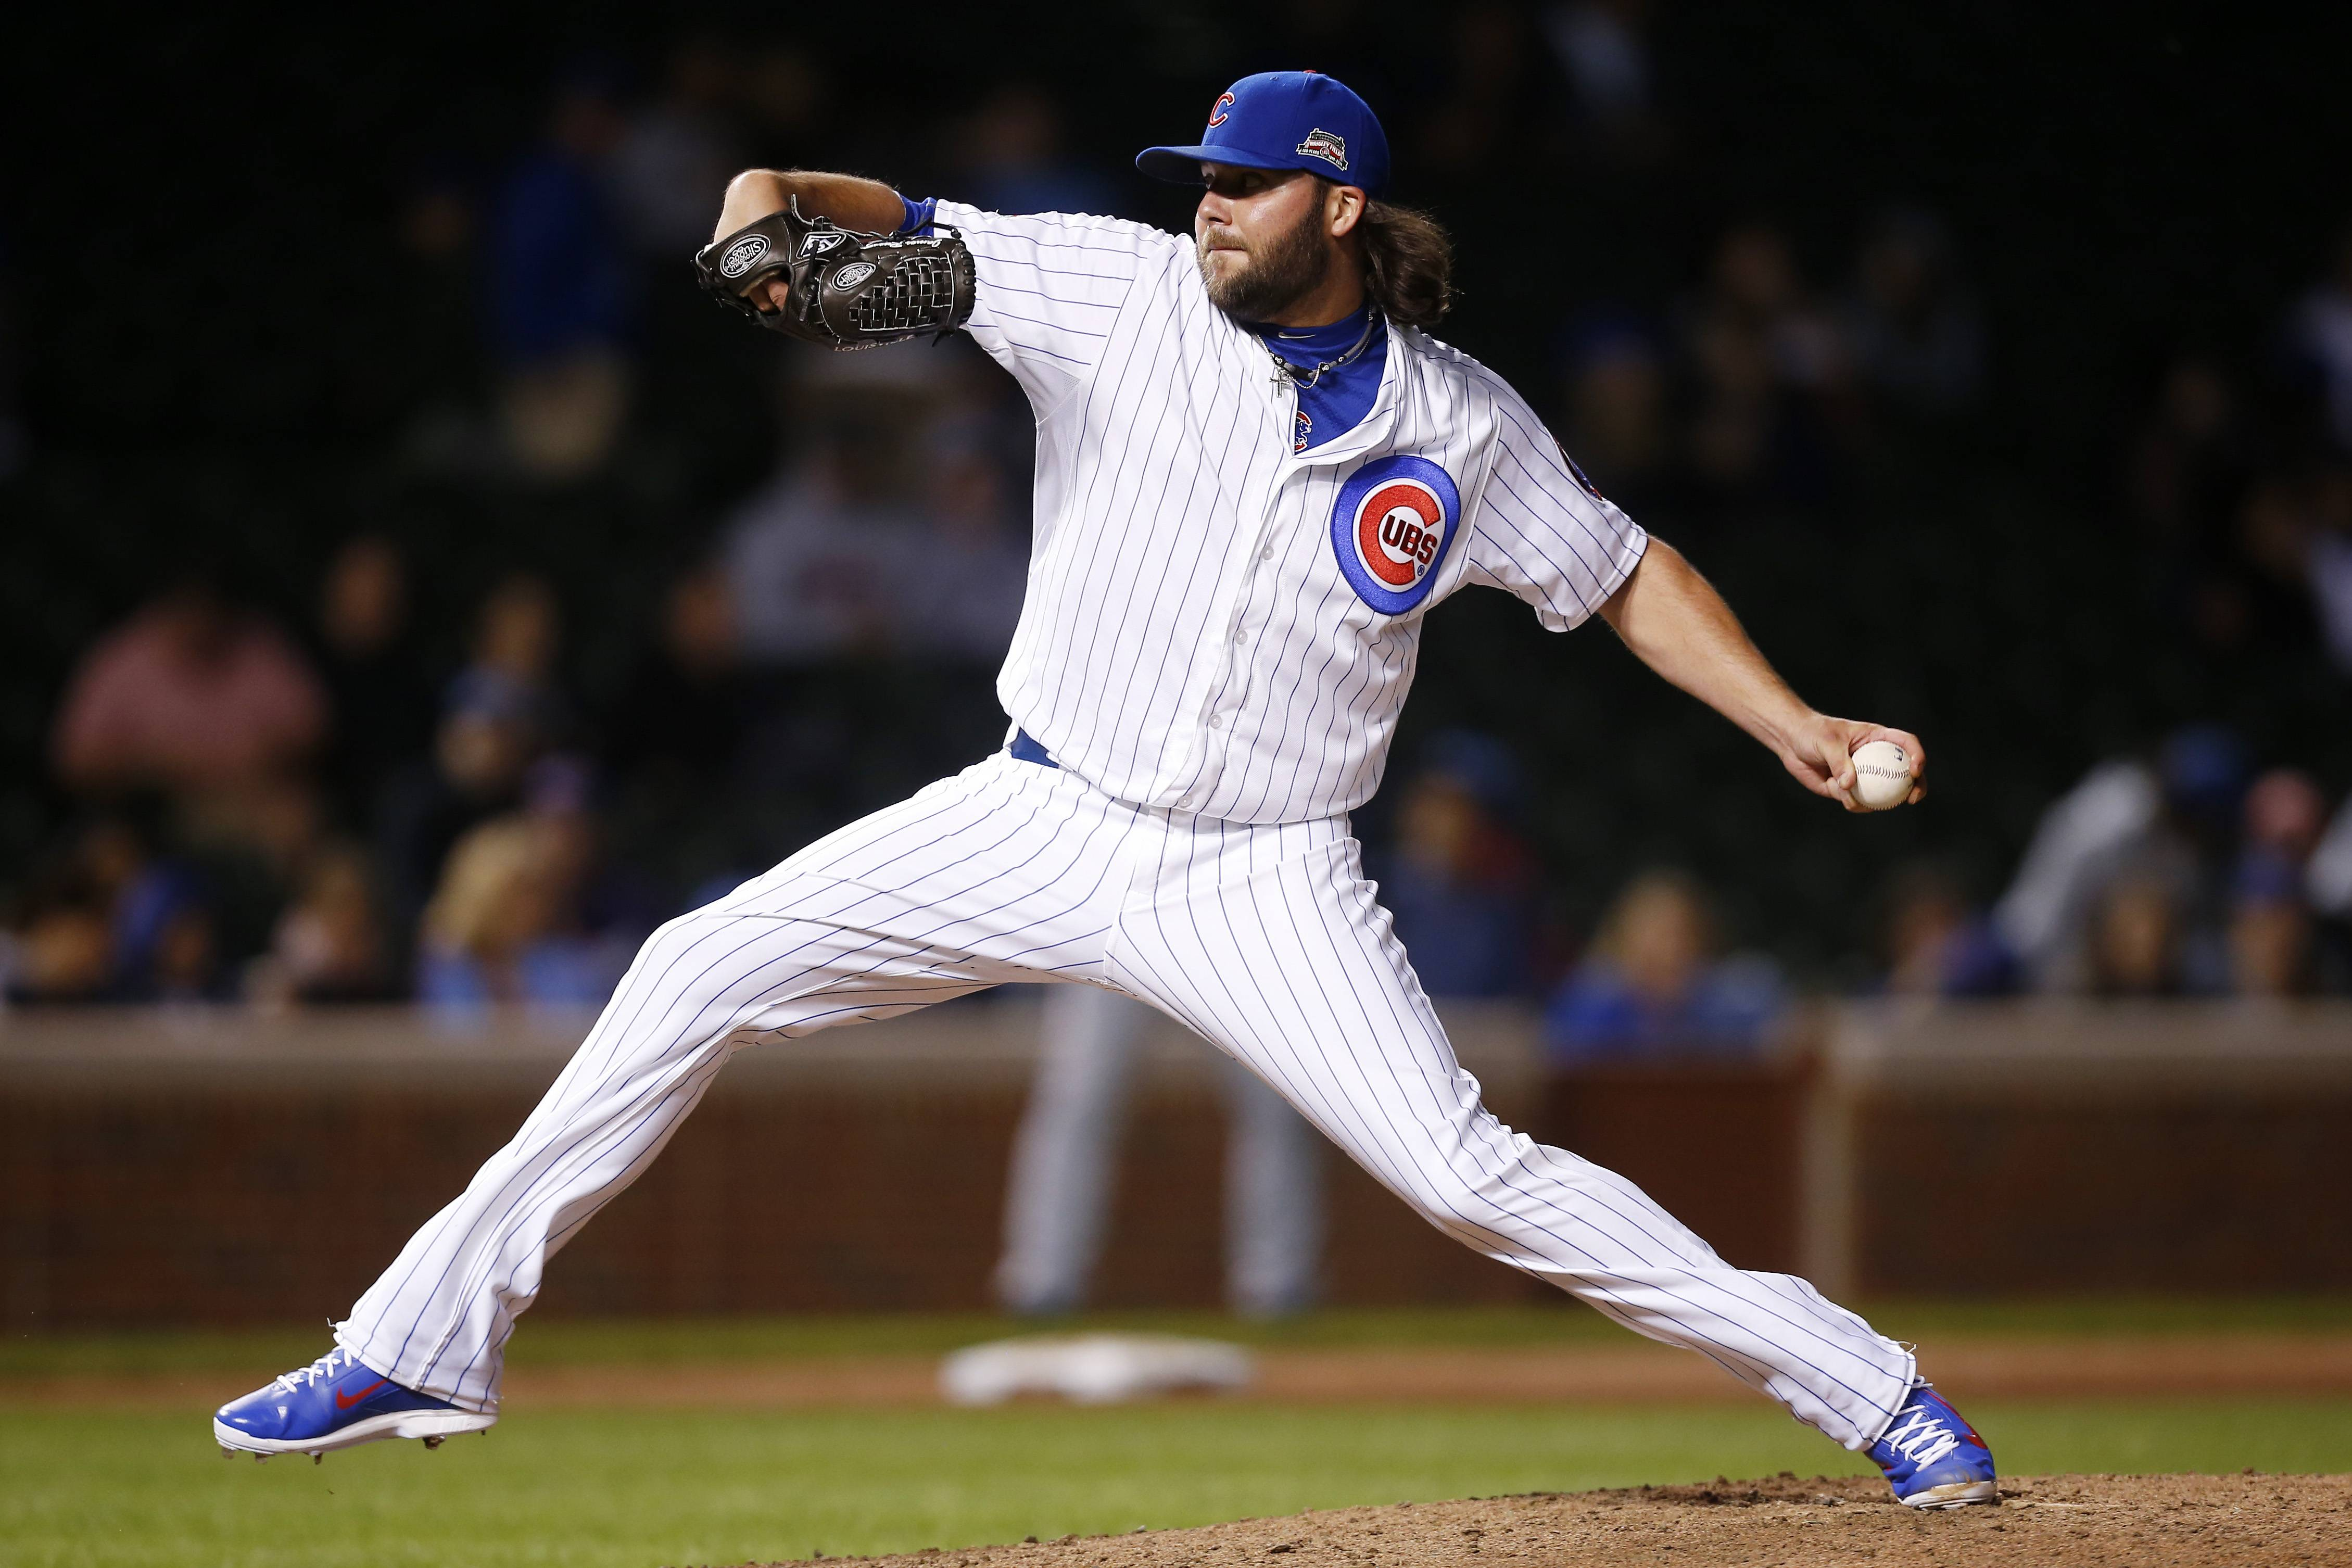 Cubs relief pitcher James Russell delivers against the San Diego Padres during the ninth inning of a baseball game on Wednesday, July 23, 2014, in Chicago.